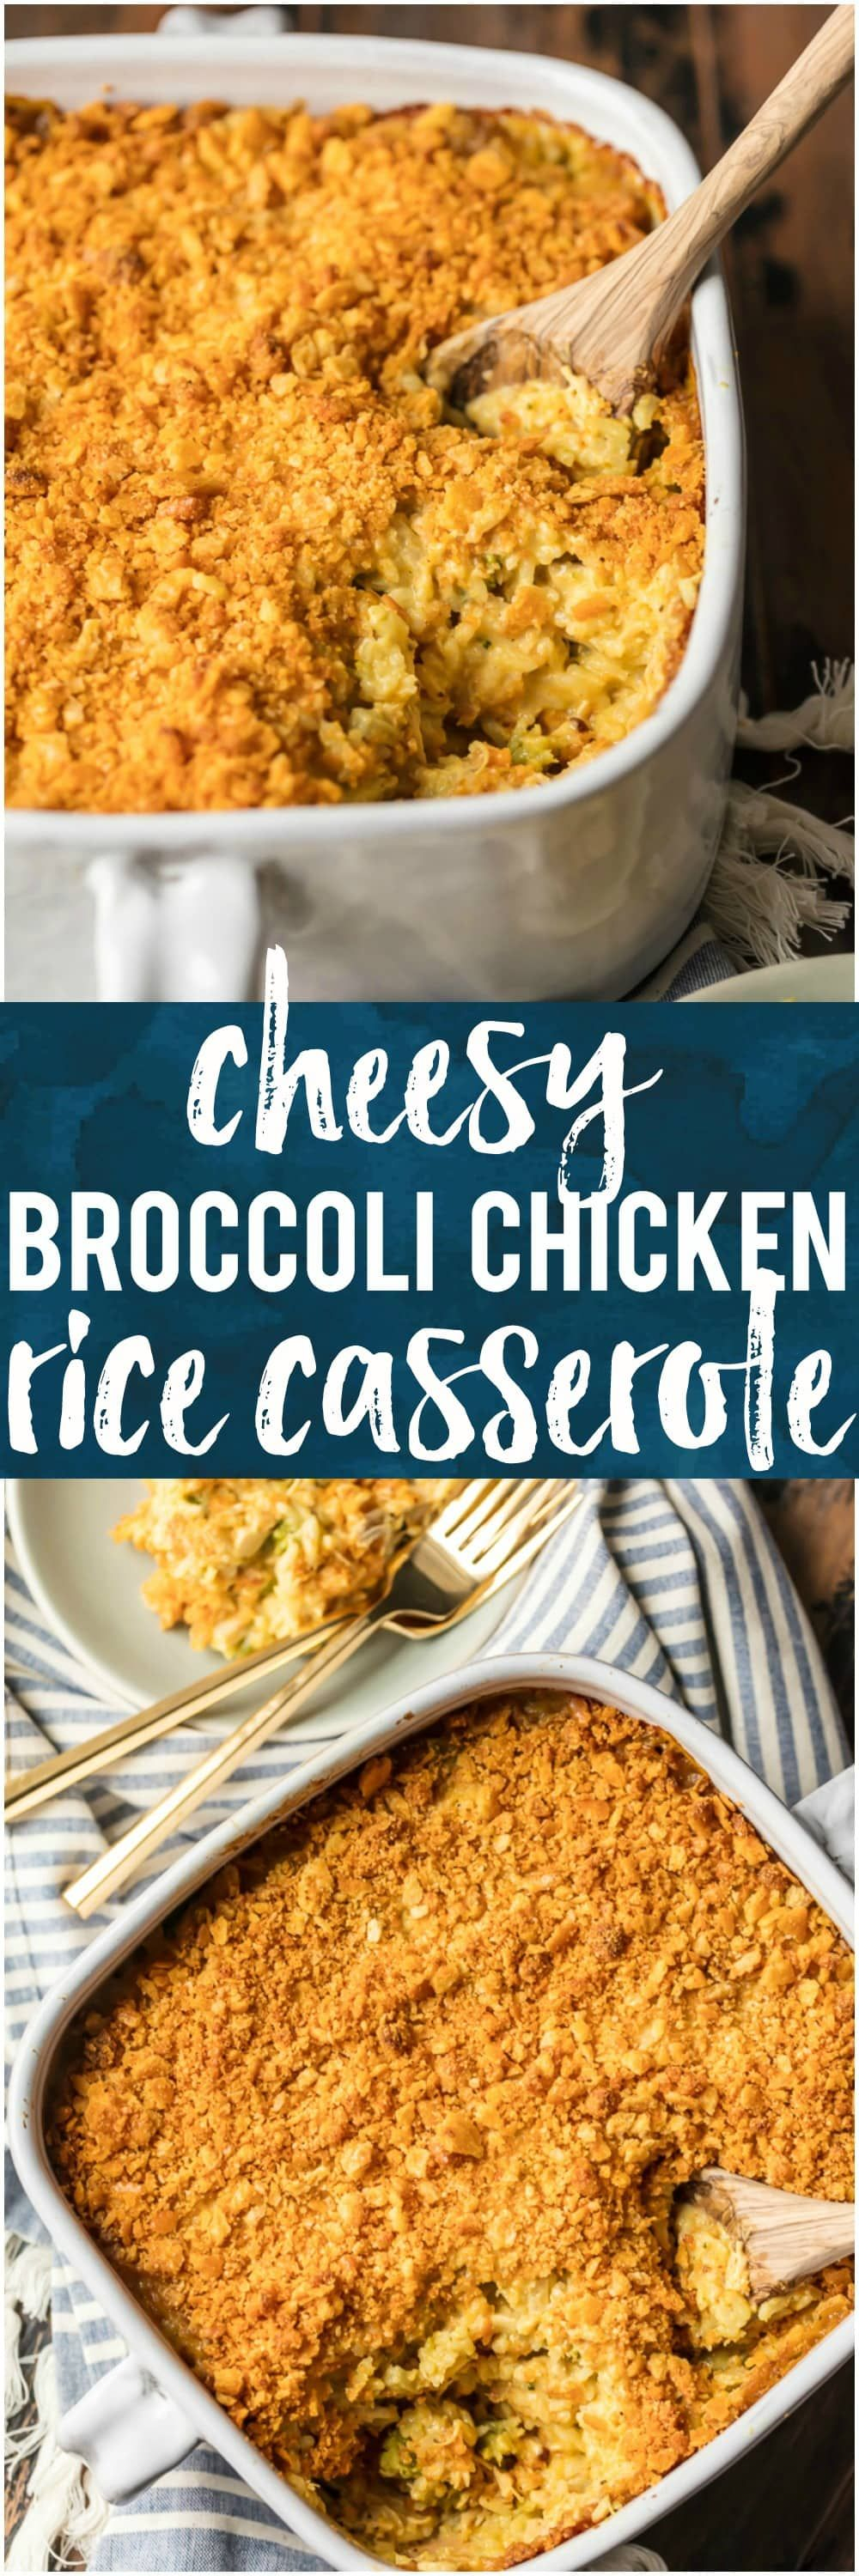 This cheesy broccoli chicken rice casserole is a favorite comfort this cheesy broccoli chicken rice casserole is a favorite comfort food recipe loaded with everything that makes you think of home youll be shocked how forumfinder Images